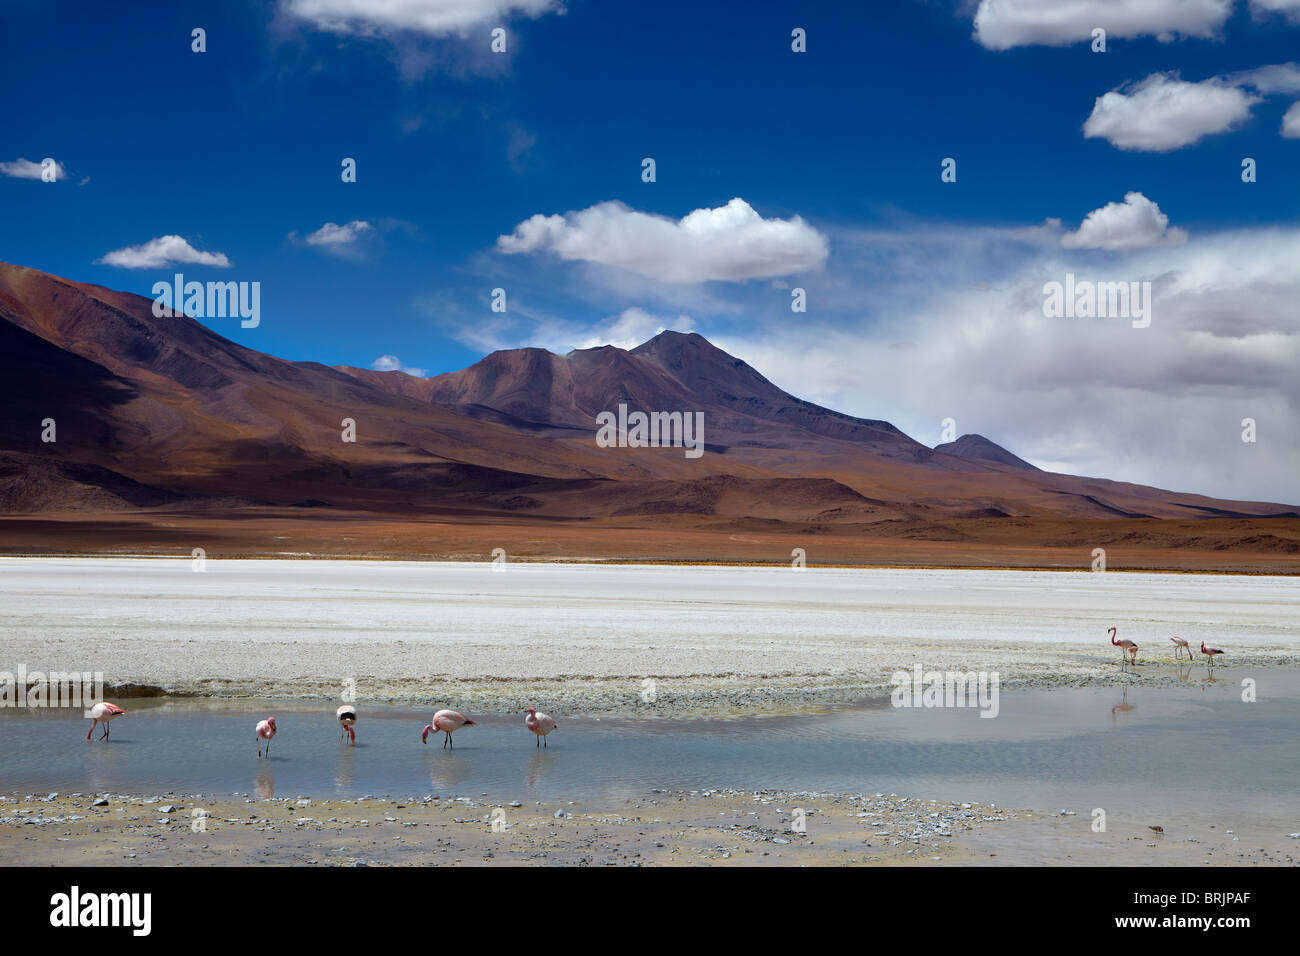 James flamingos on a laguna in the remote region of high desert, altiplano and volcanoes near Tapaquilcha, Bolivia - Stock Image